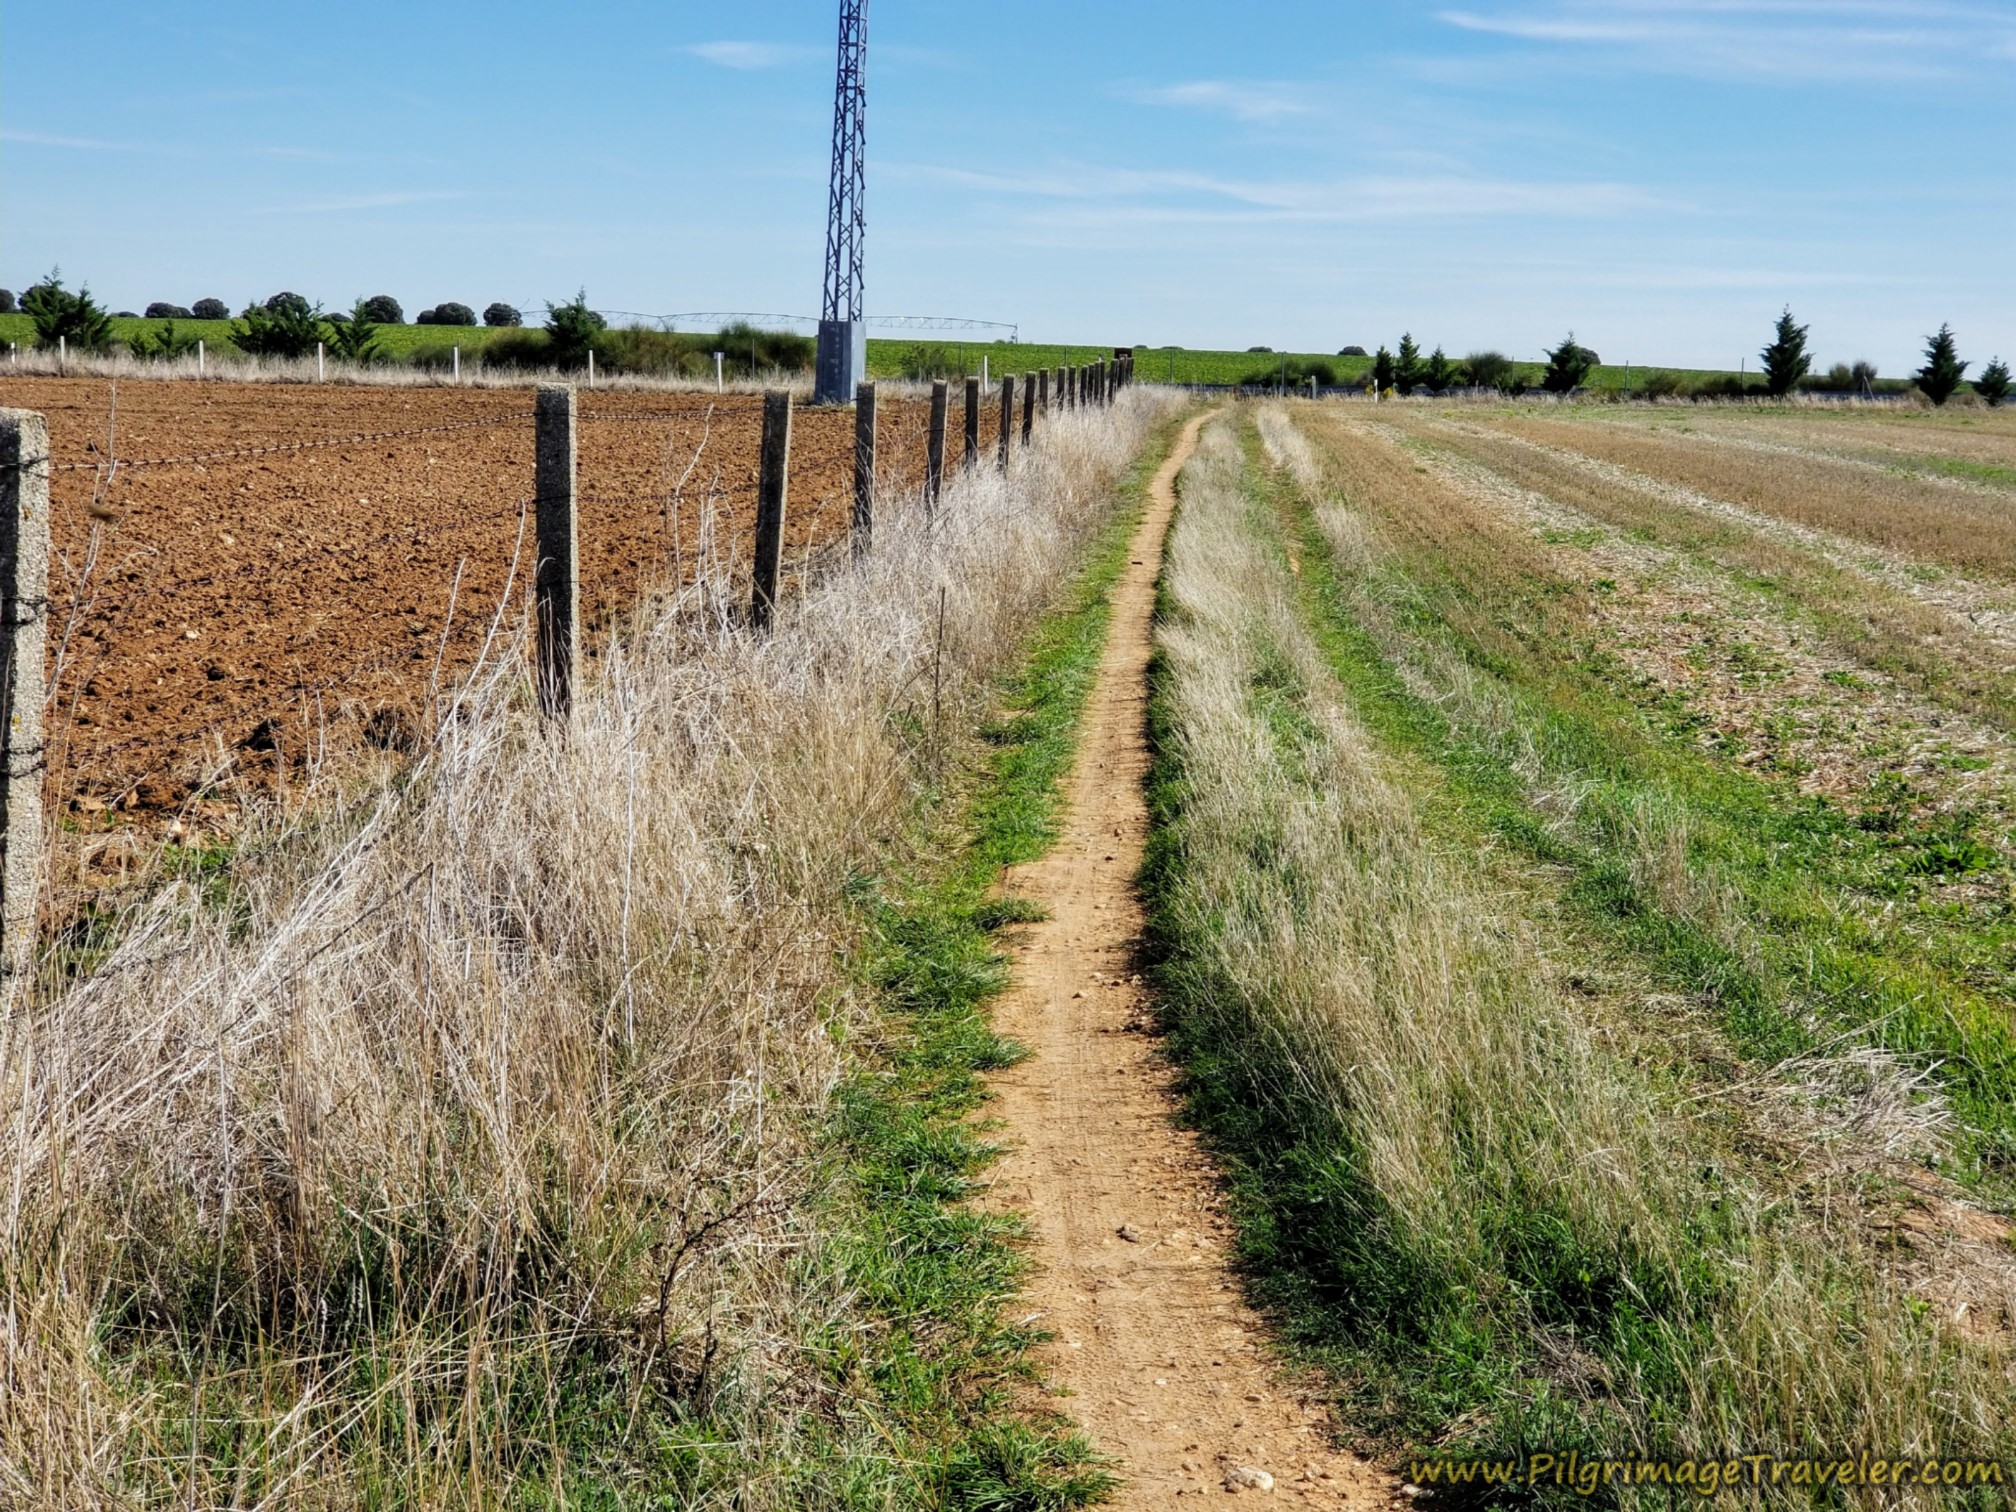 The Path Ahead at the Fenceline